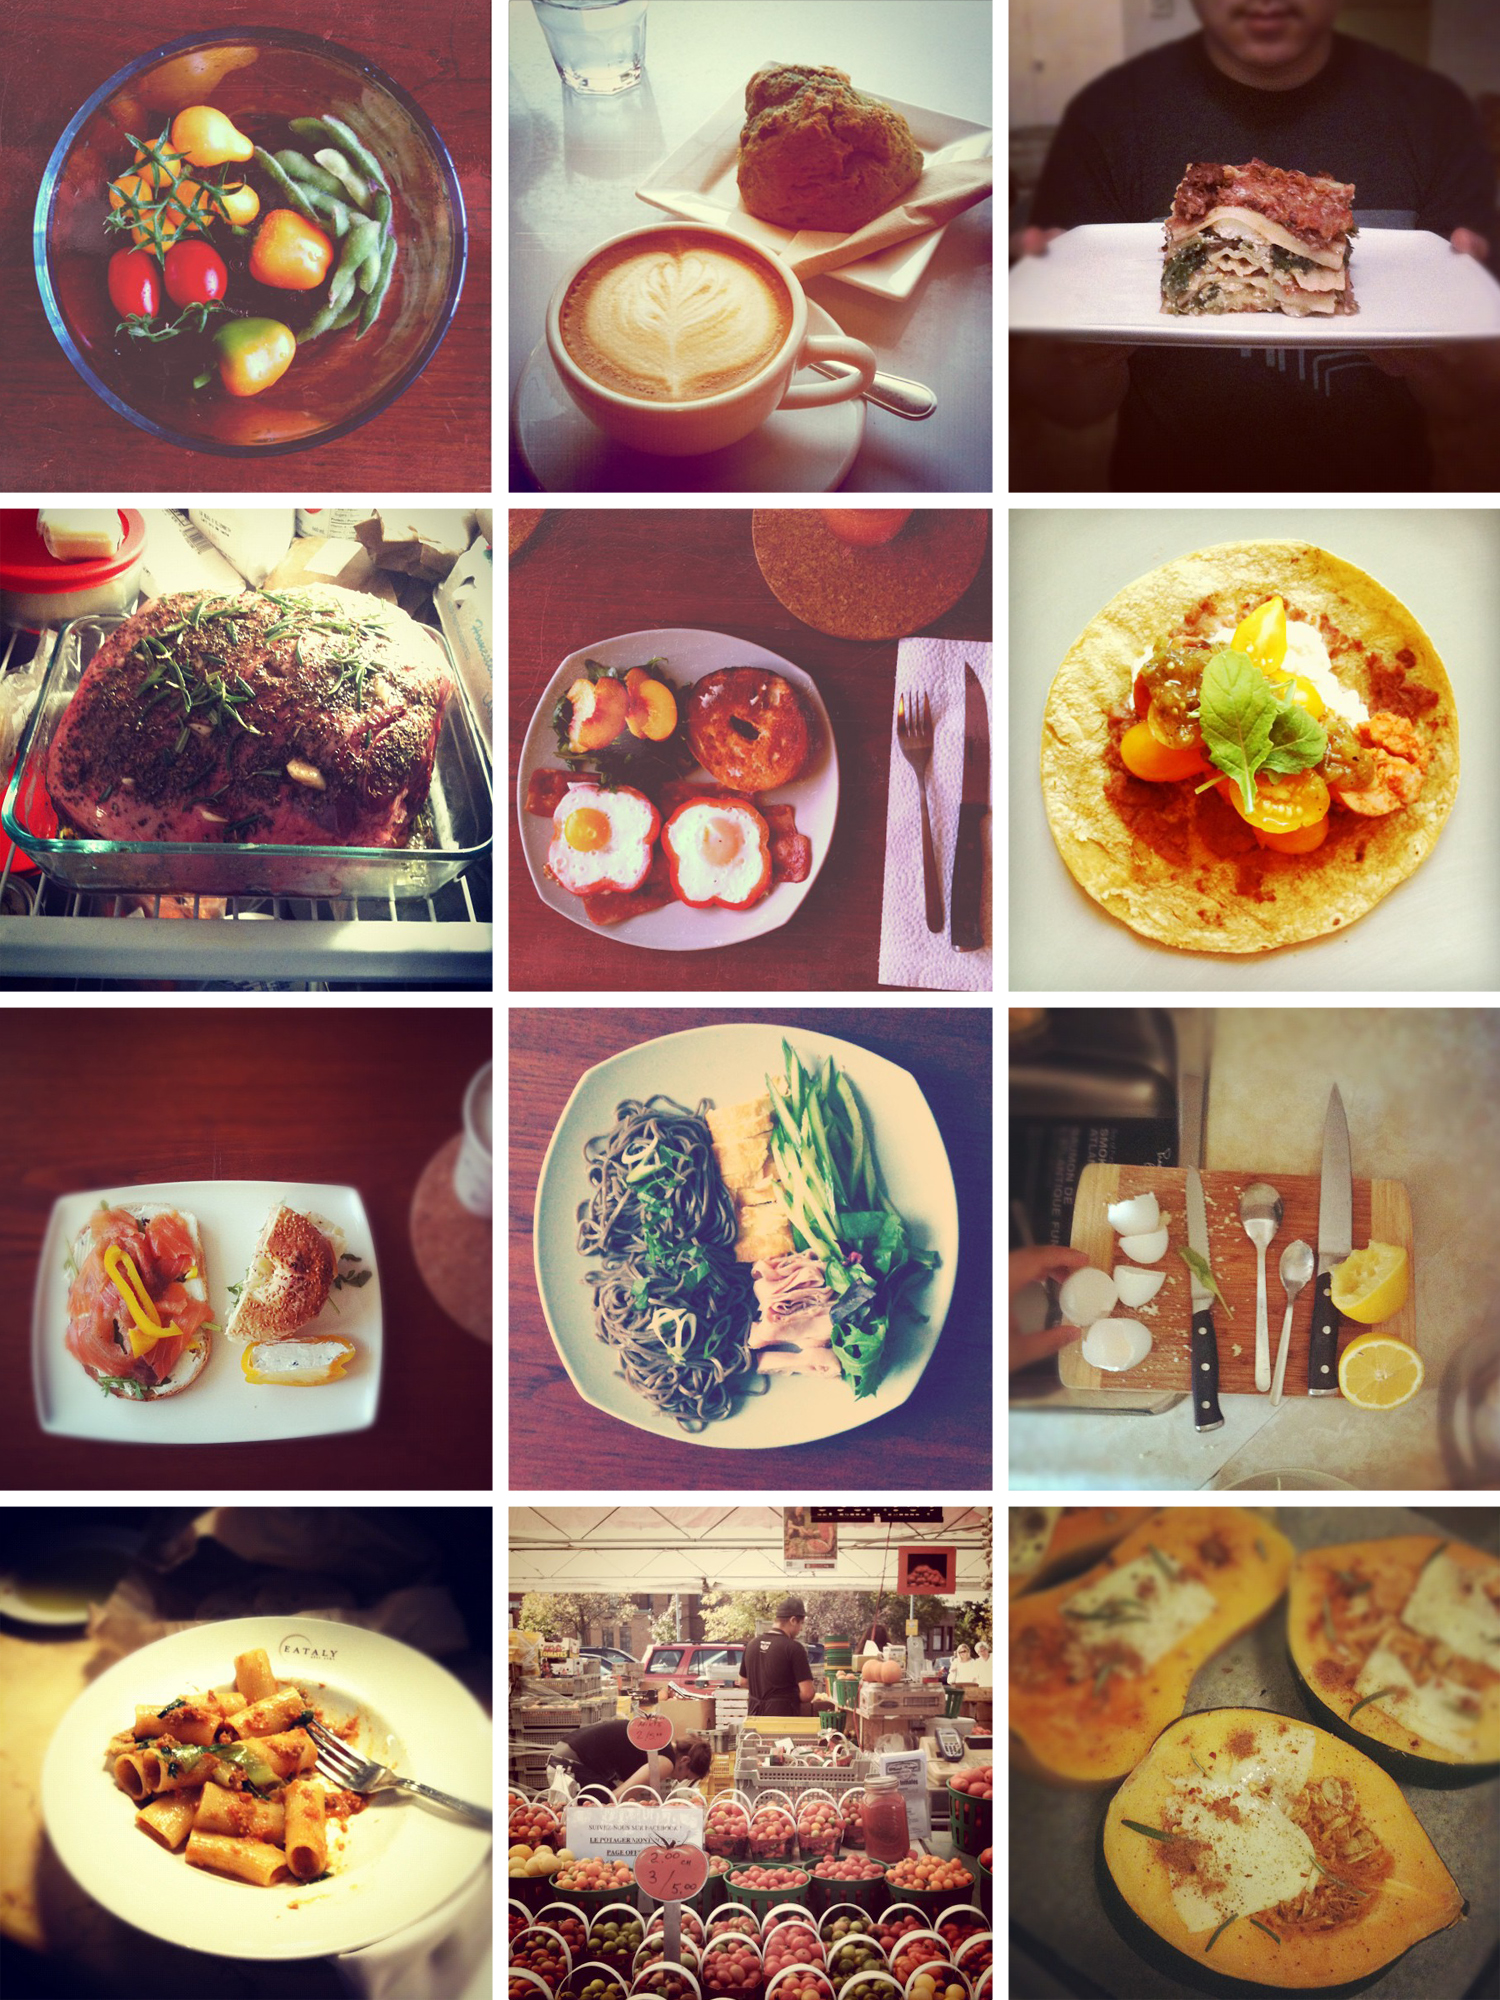 4417 mile diet on instagram